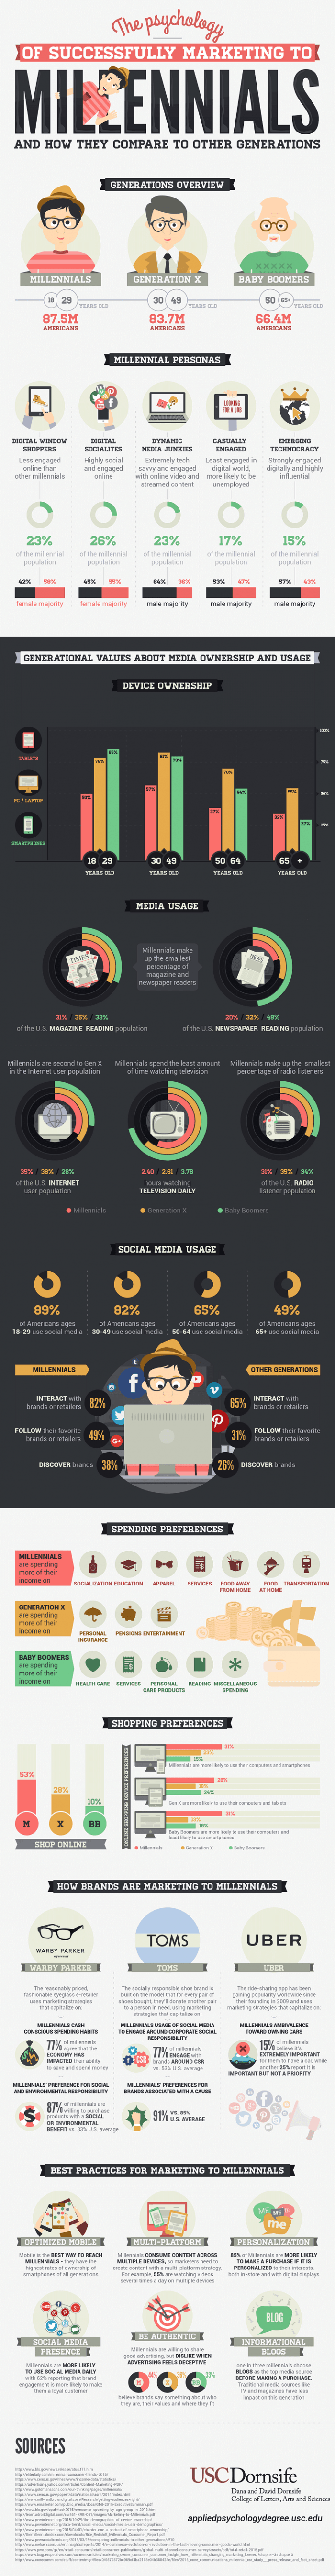 infographic describes marketing strategies for millennials